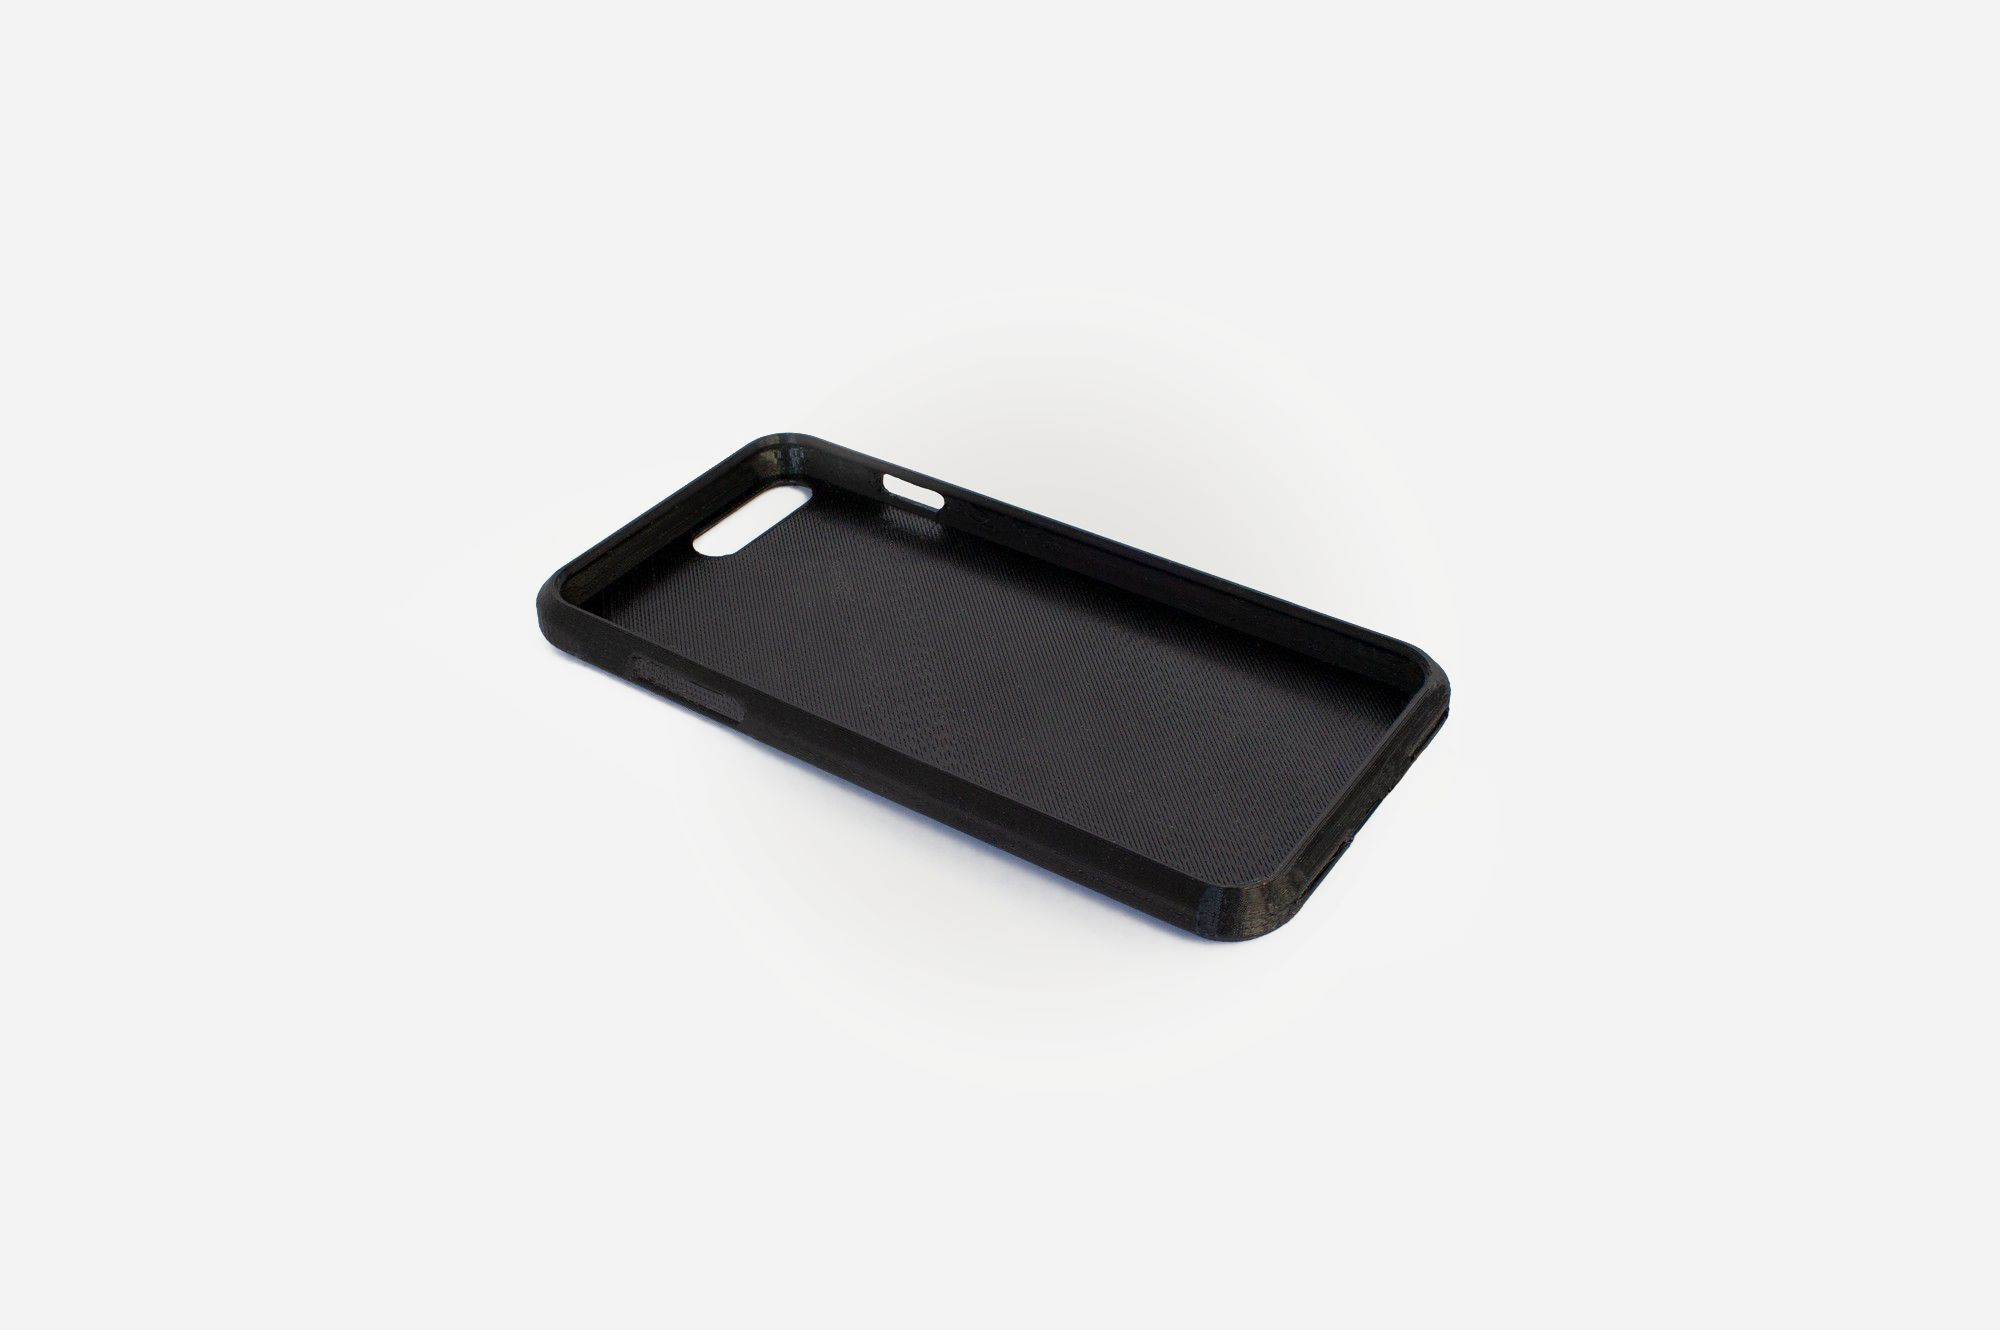 3d printed flex or TPU phone case